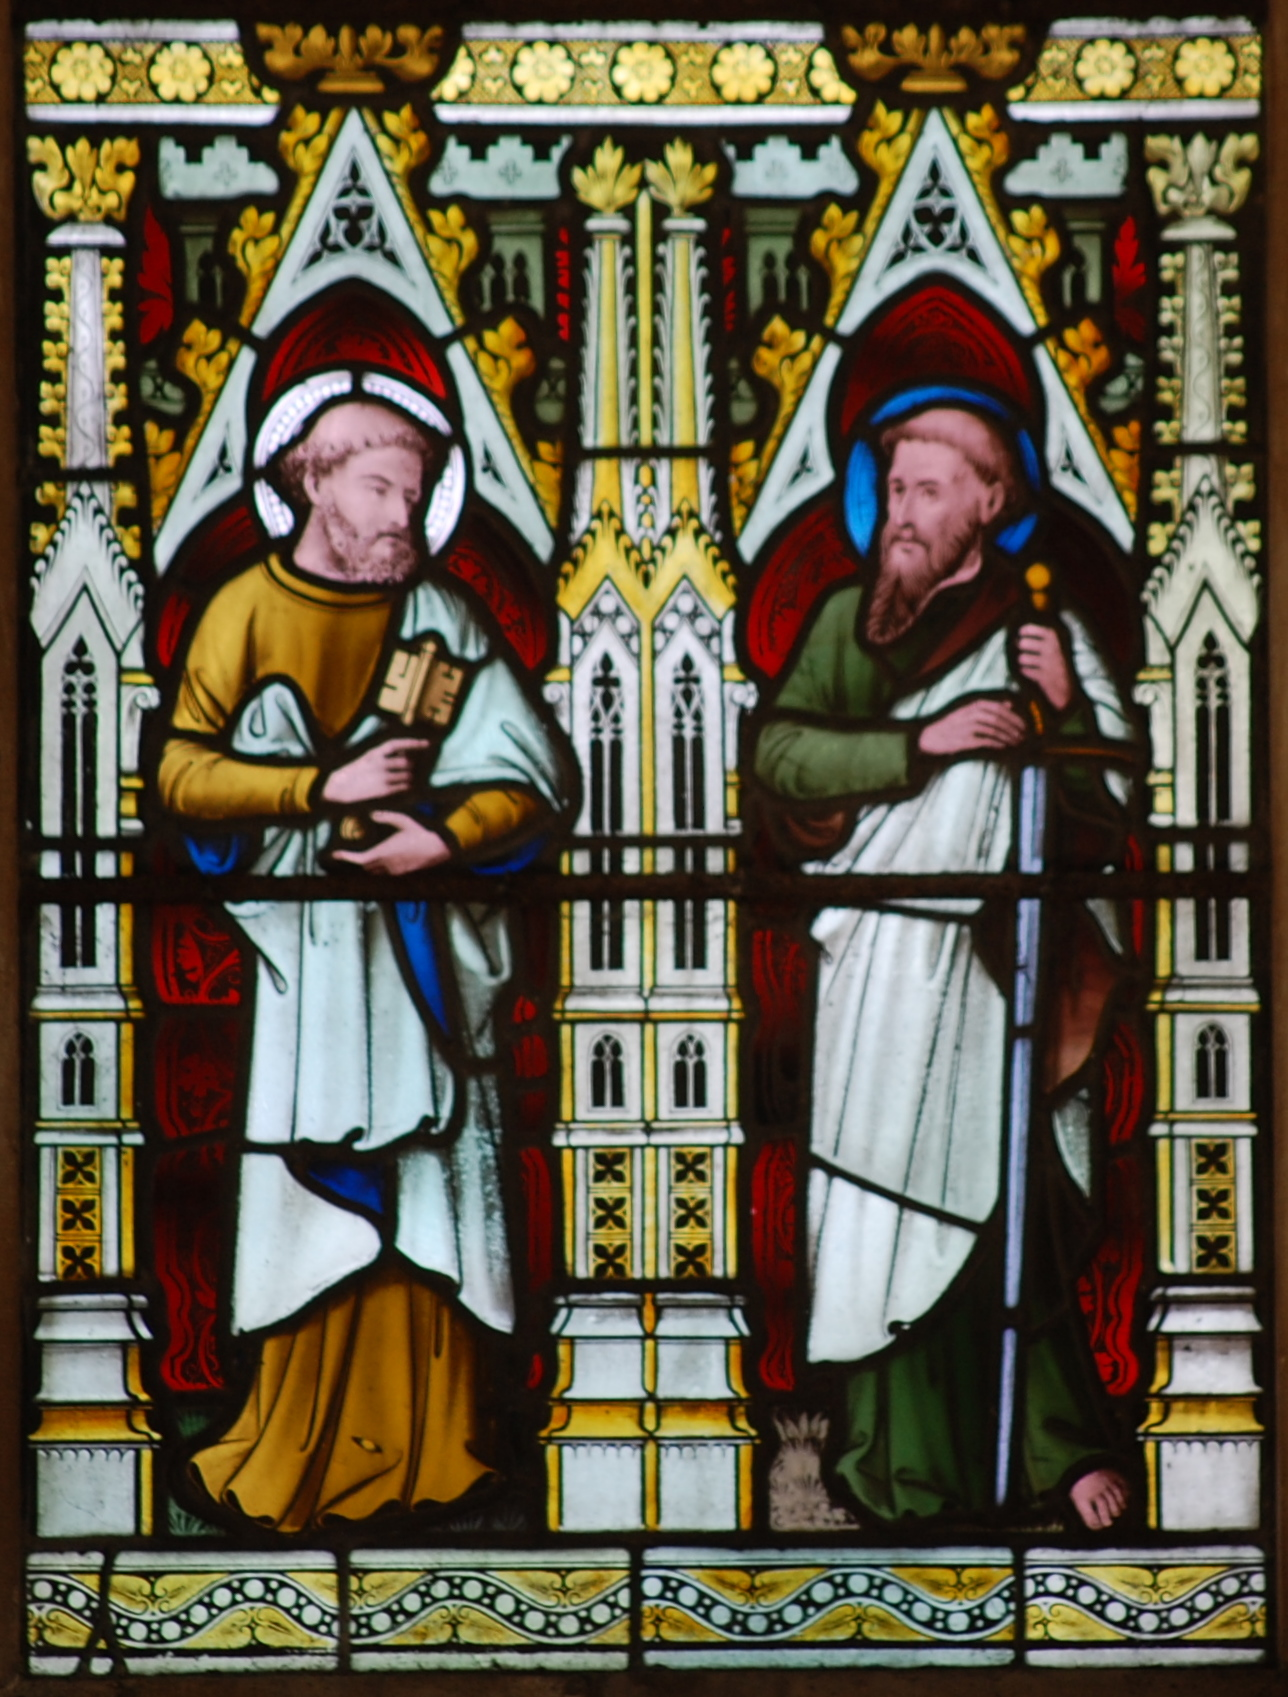 St. Peter and St. Paul. Detail from stained glass in the church of St Mary and St Lambert in Stonham Aspal in Suffolk dans immagini sacre